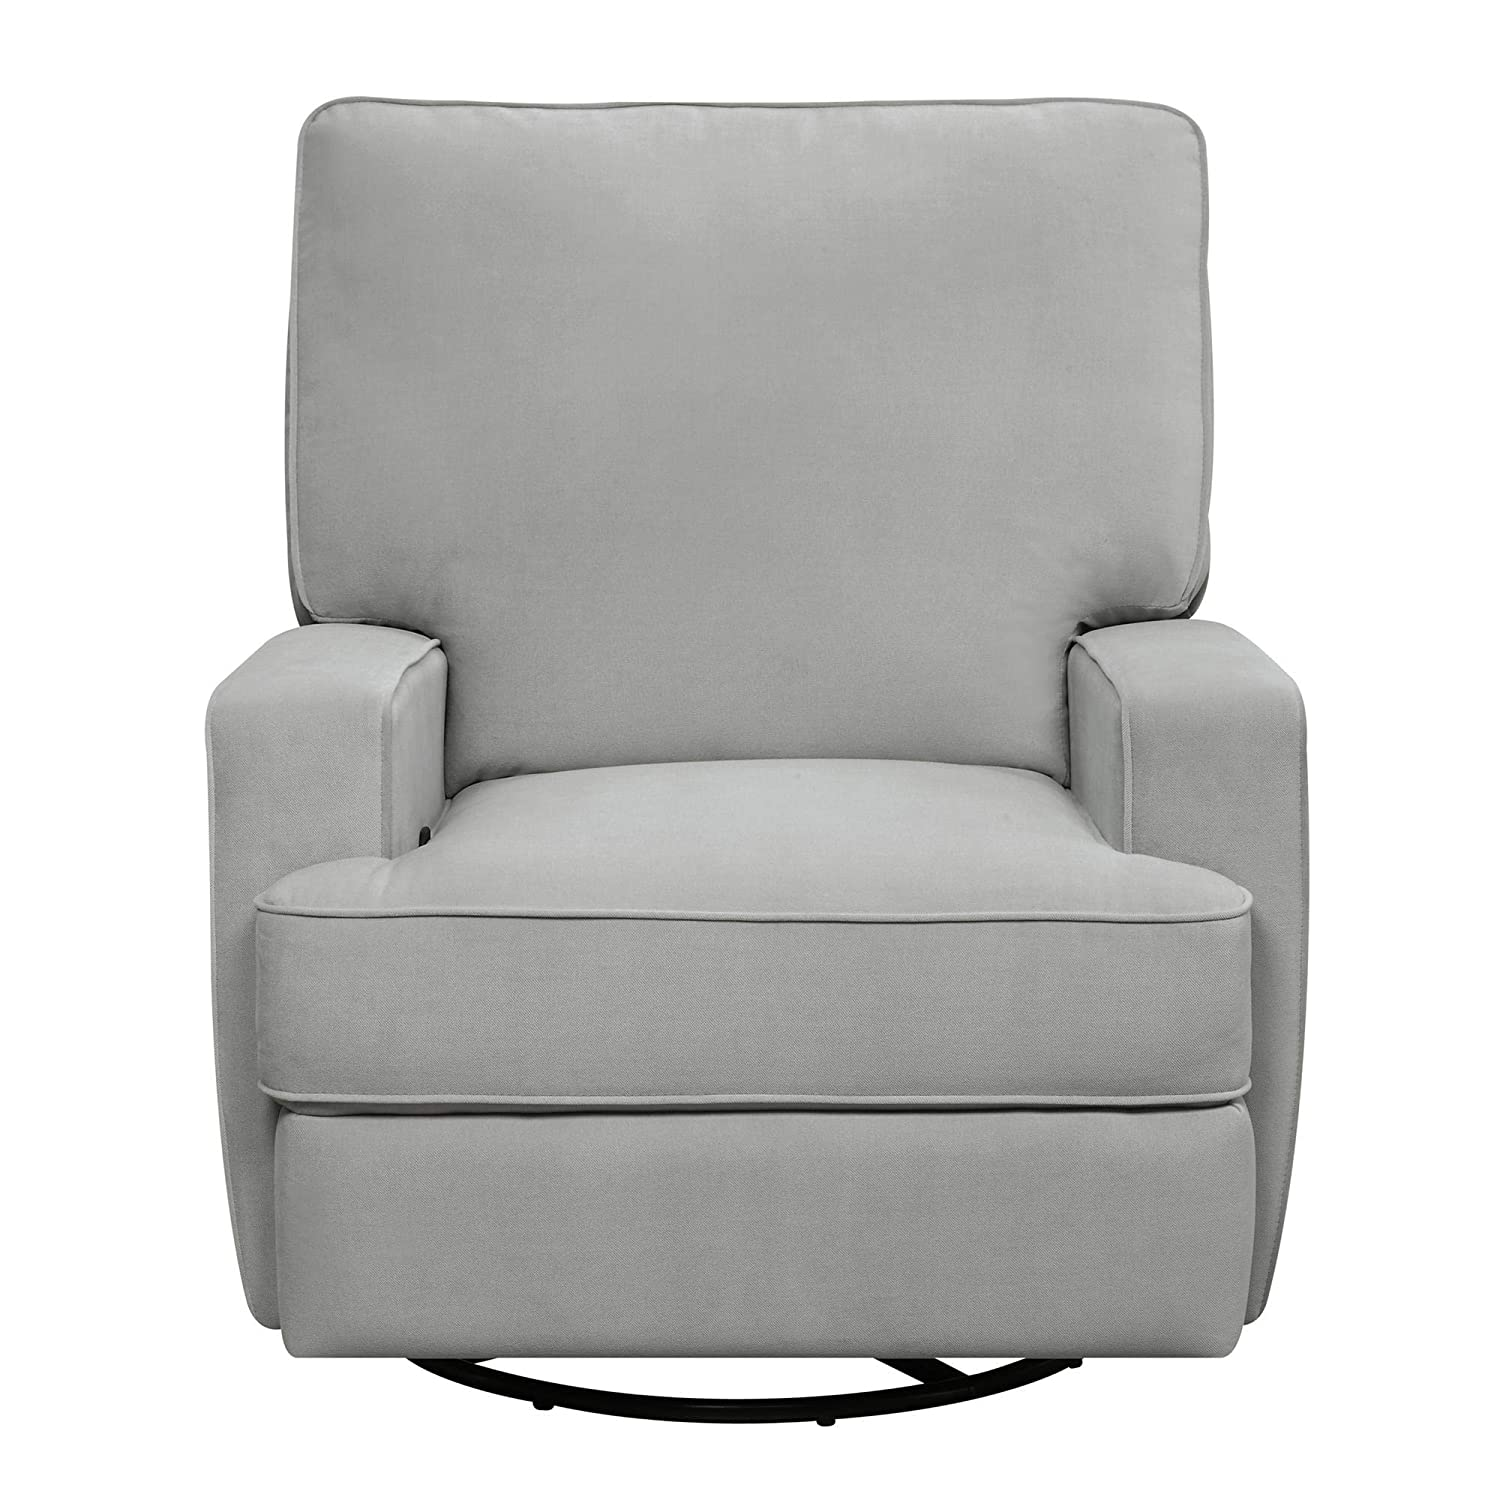 Wondrous Best Recliners For Elderly Reviews Top For Seniors In Squirreltailoven Fun Painted Chair Ideas Images Squirreltailovenorg